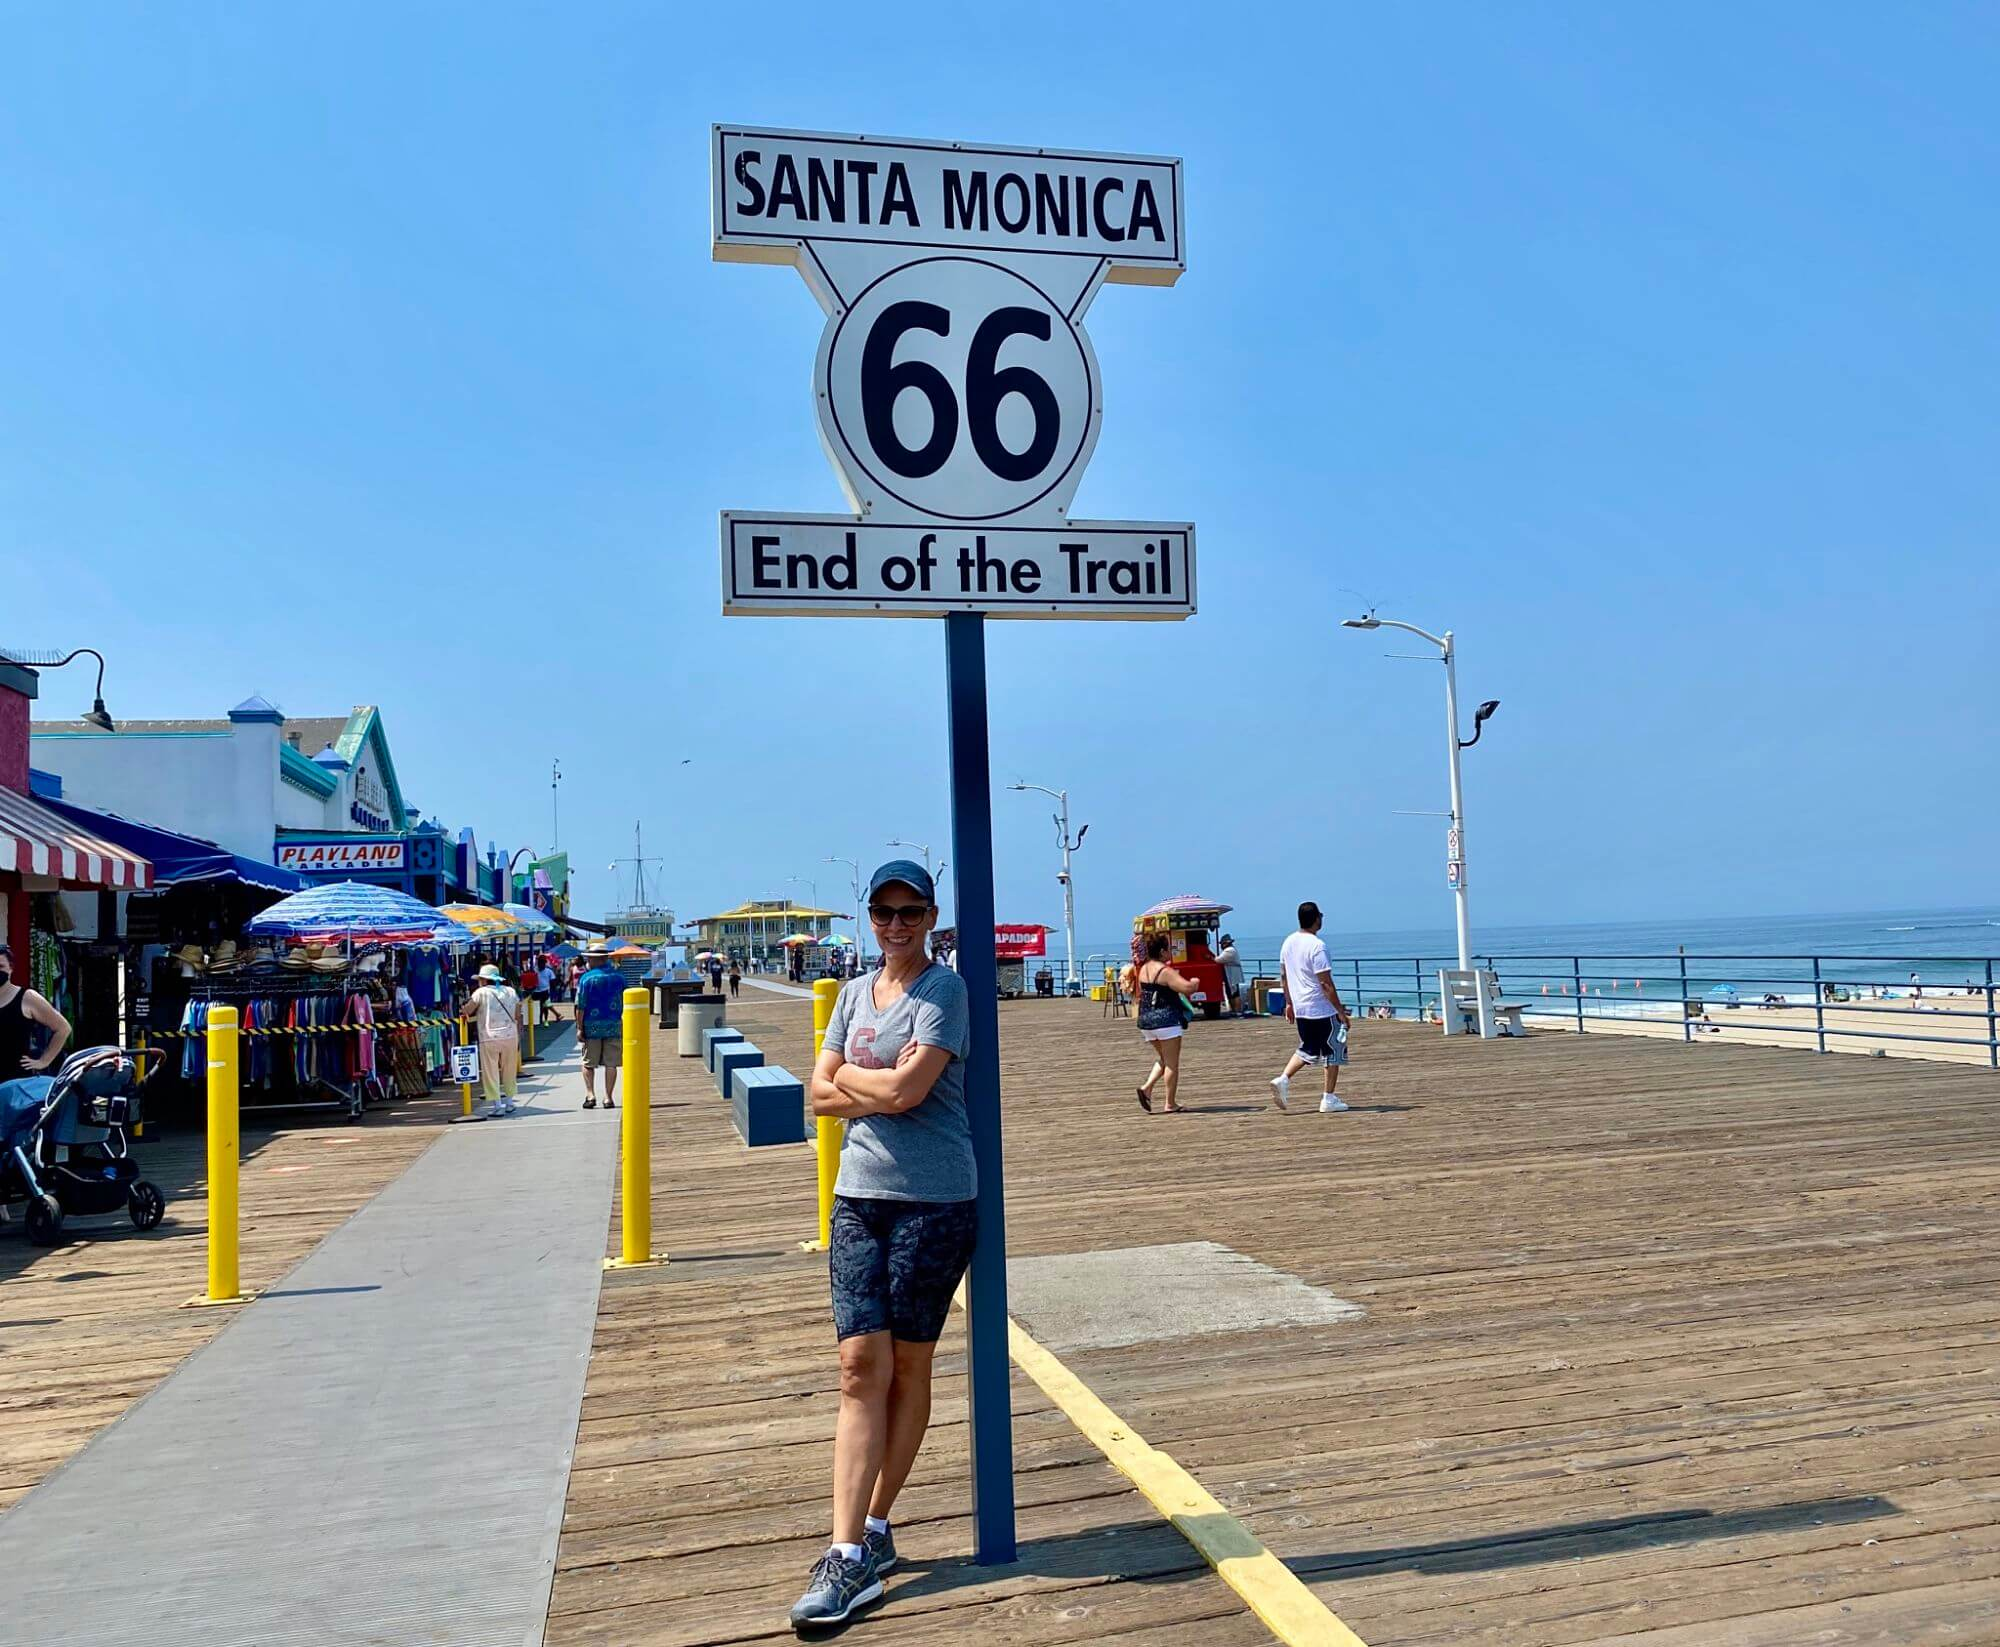 Route 66 sign on Santa Monica Pier